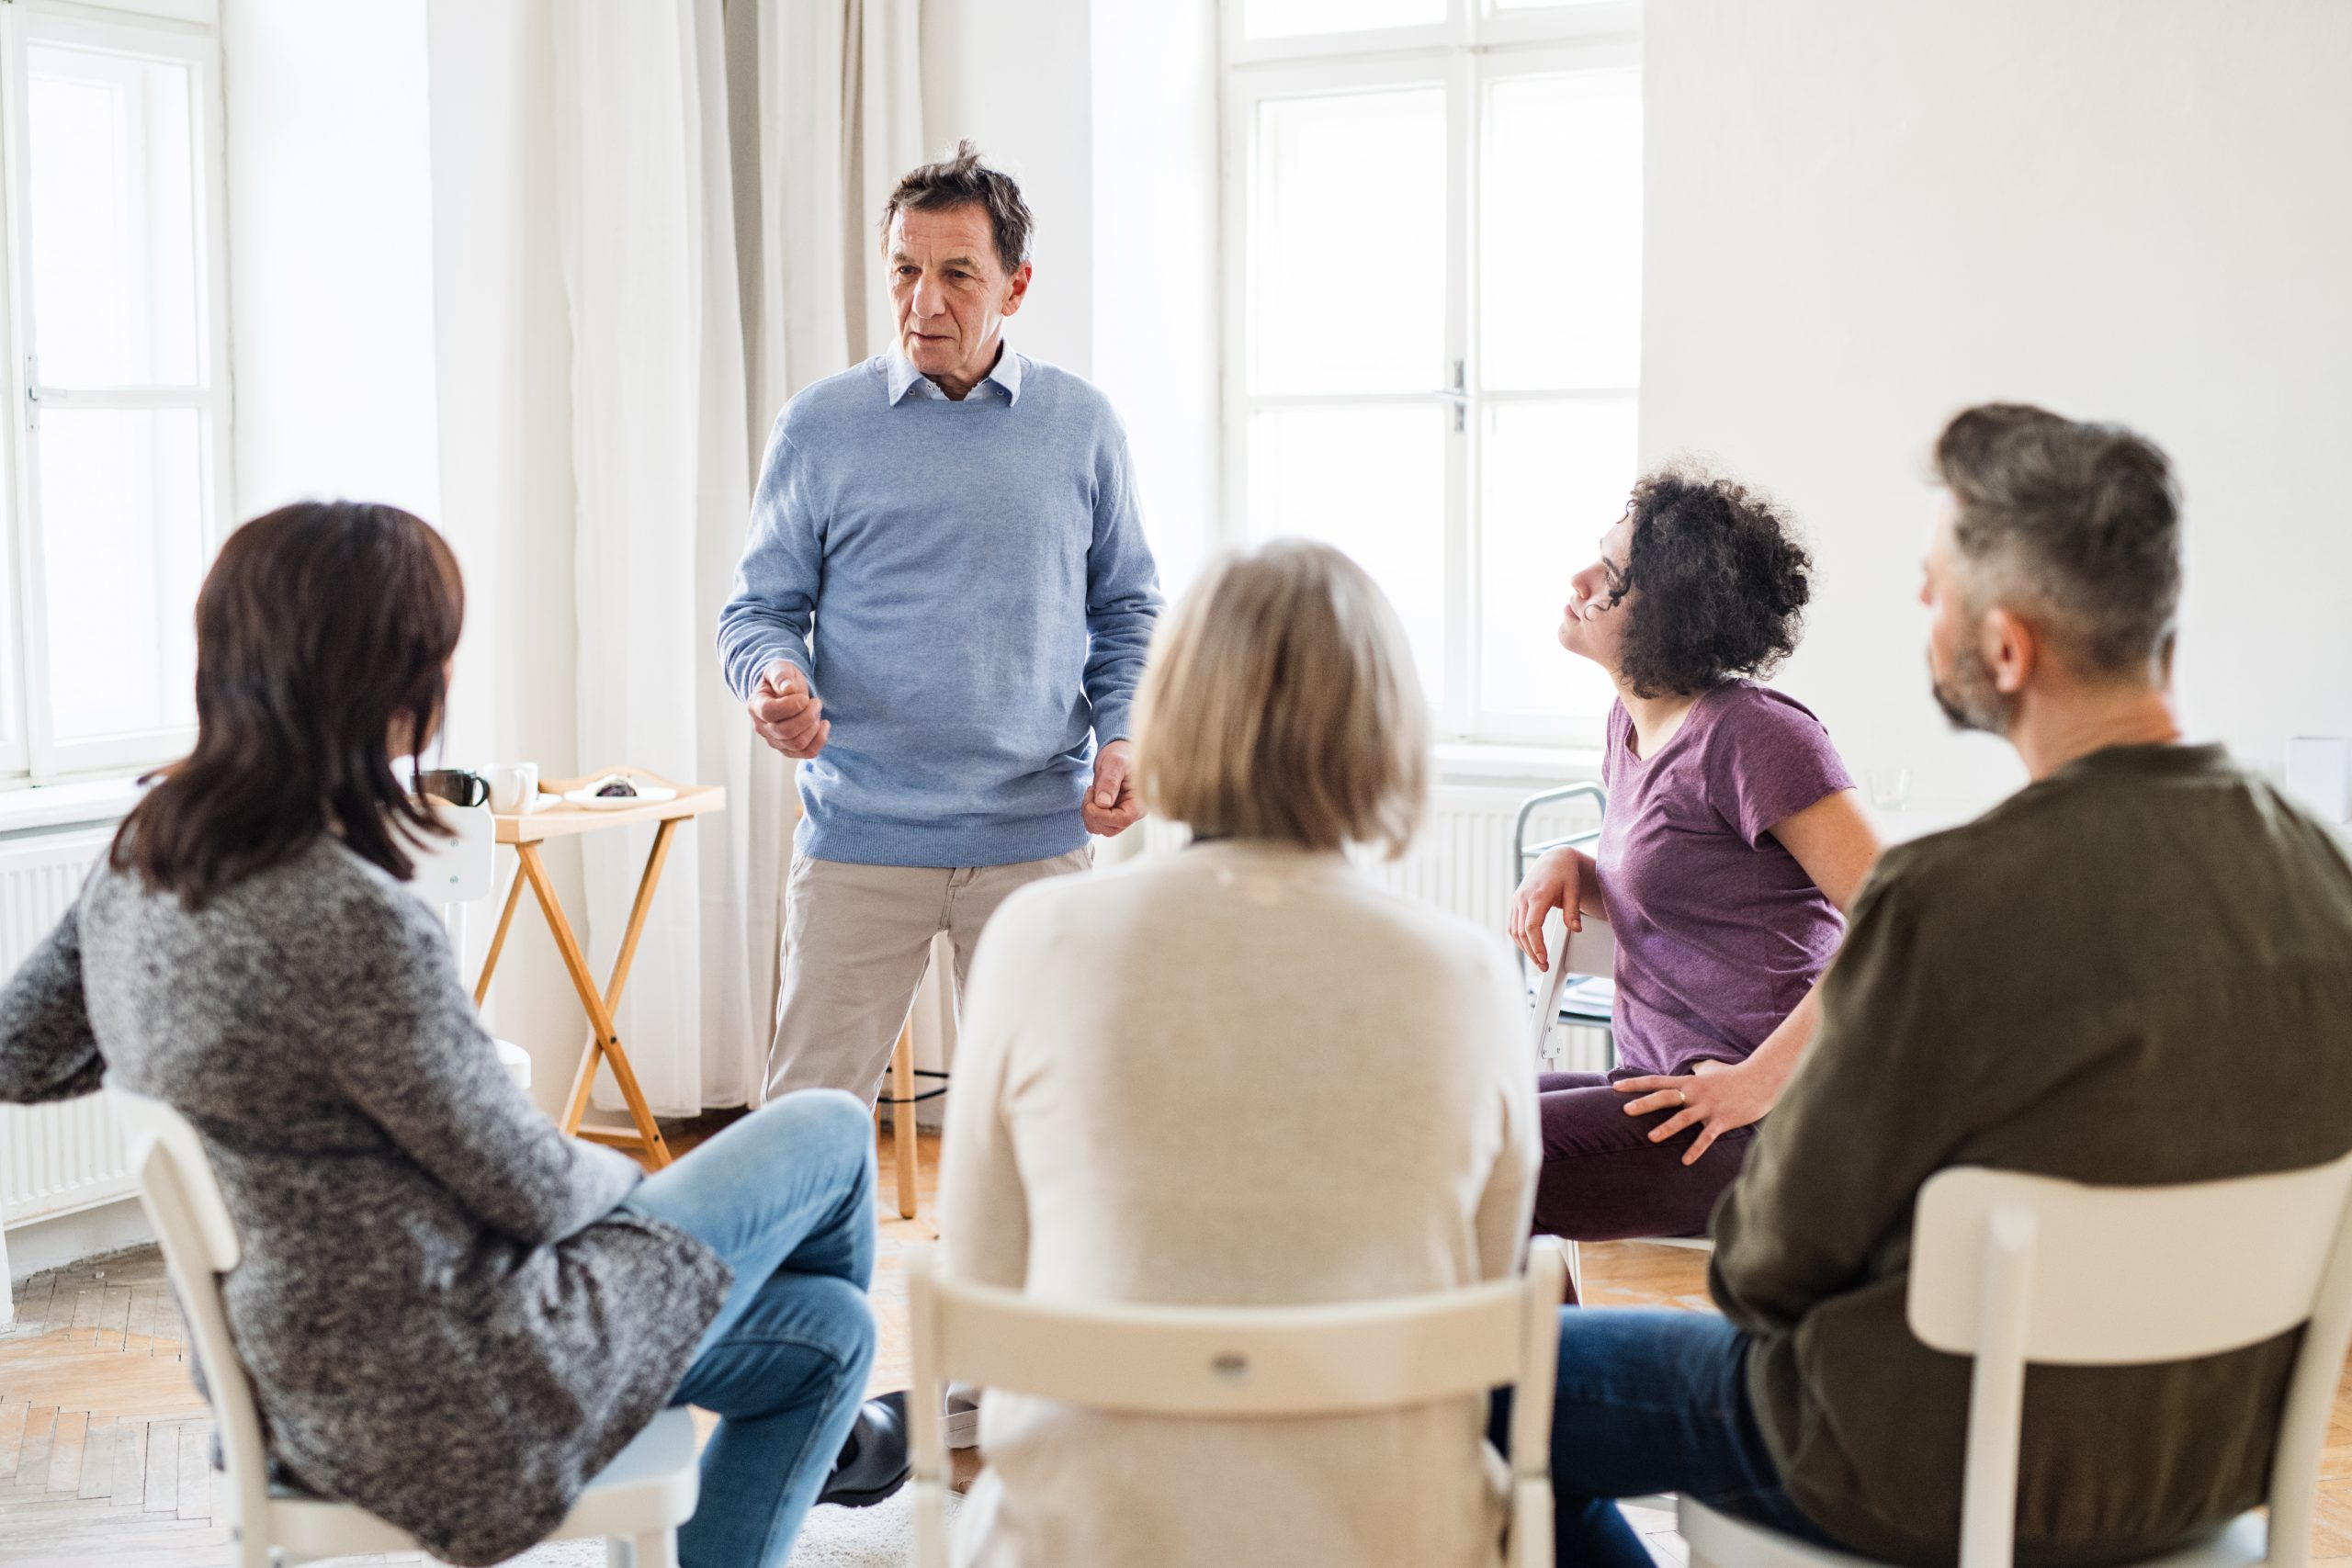 A mature man standing and talking to other people during group therapy.